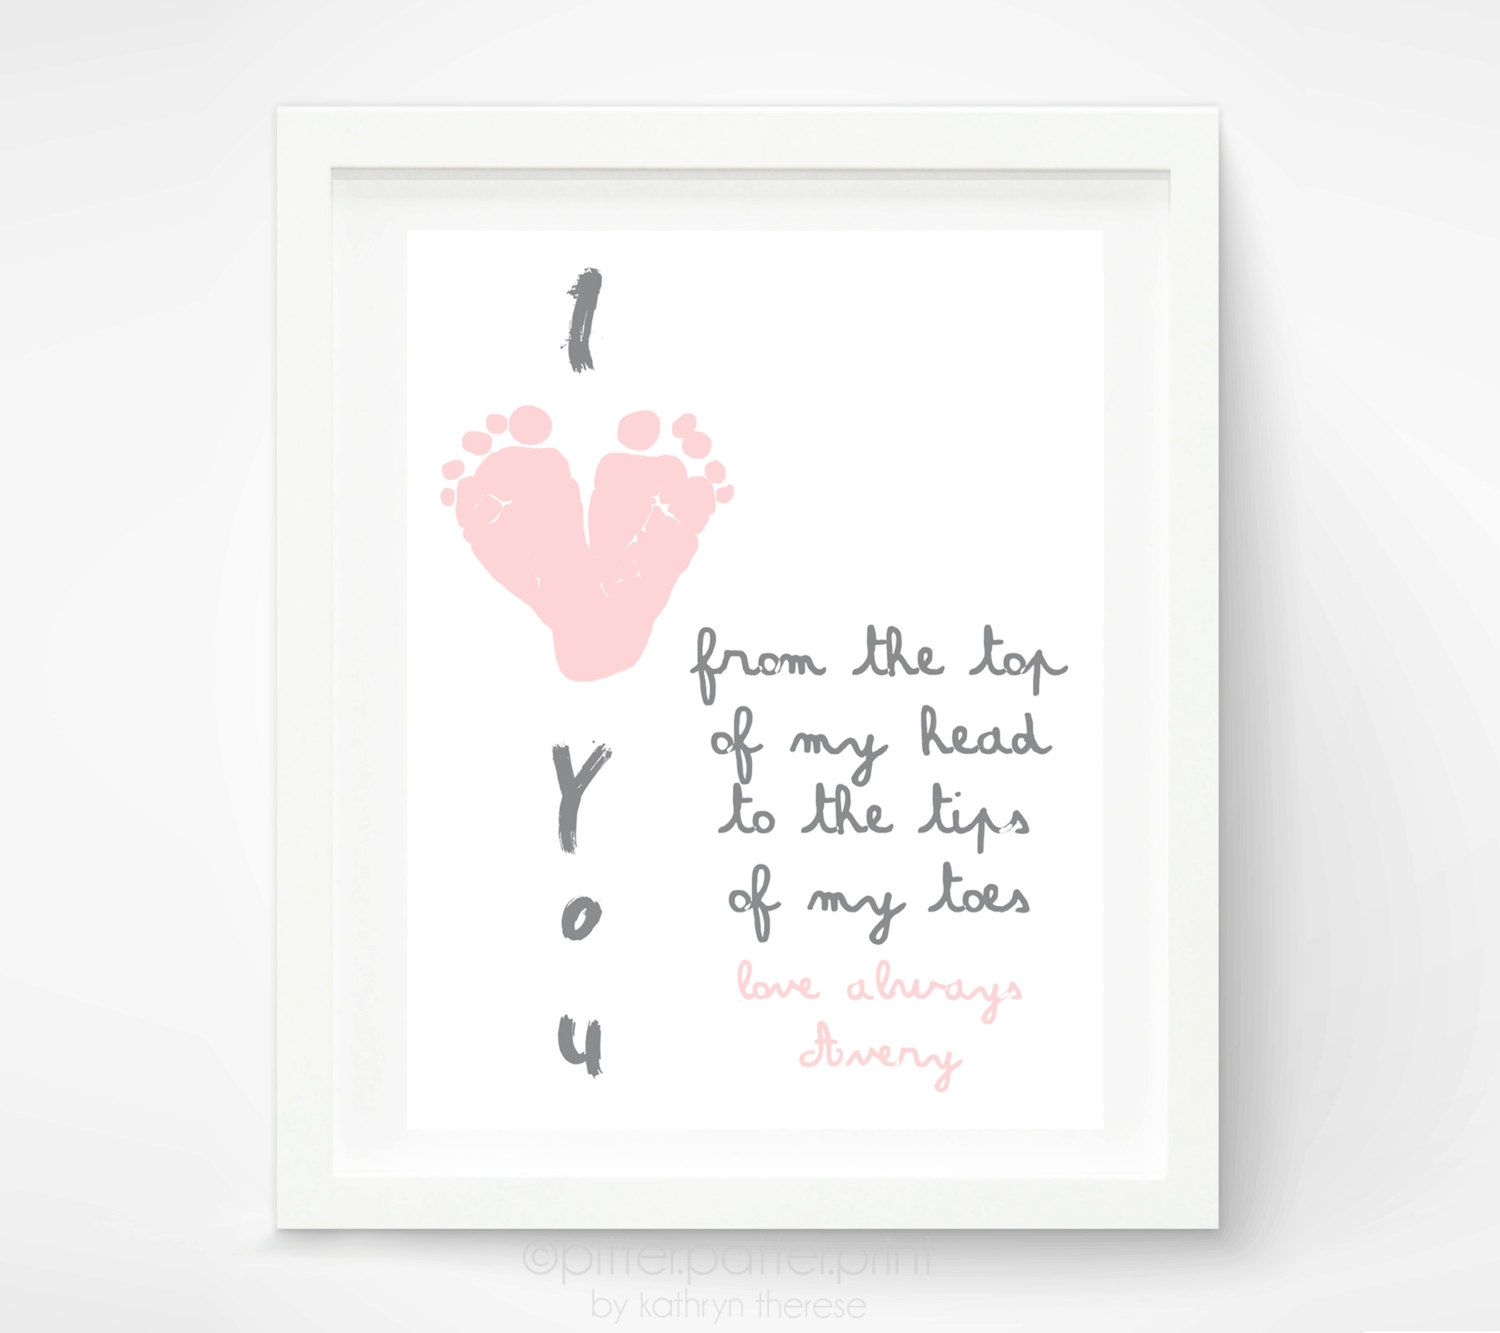 Diy Mothers Day Gifts From Baby Mother 39s Day Gift For Grandma I Love You Baby Footprint